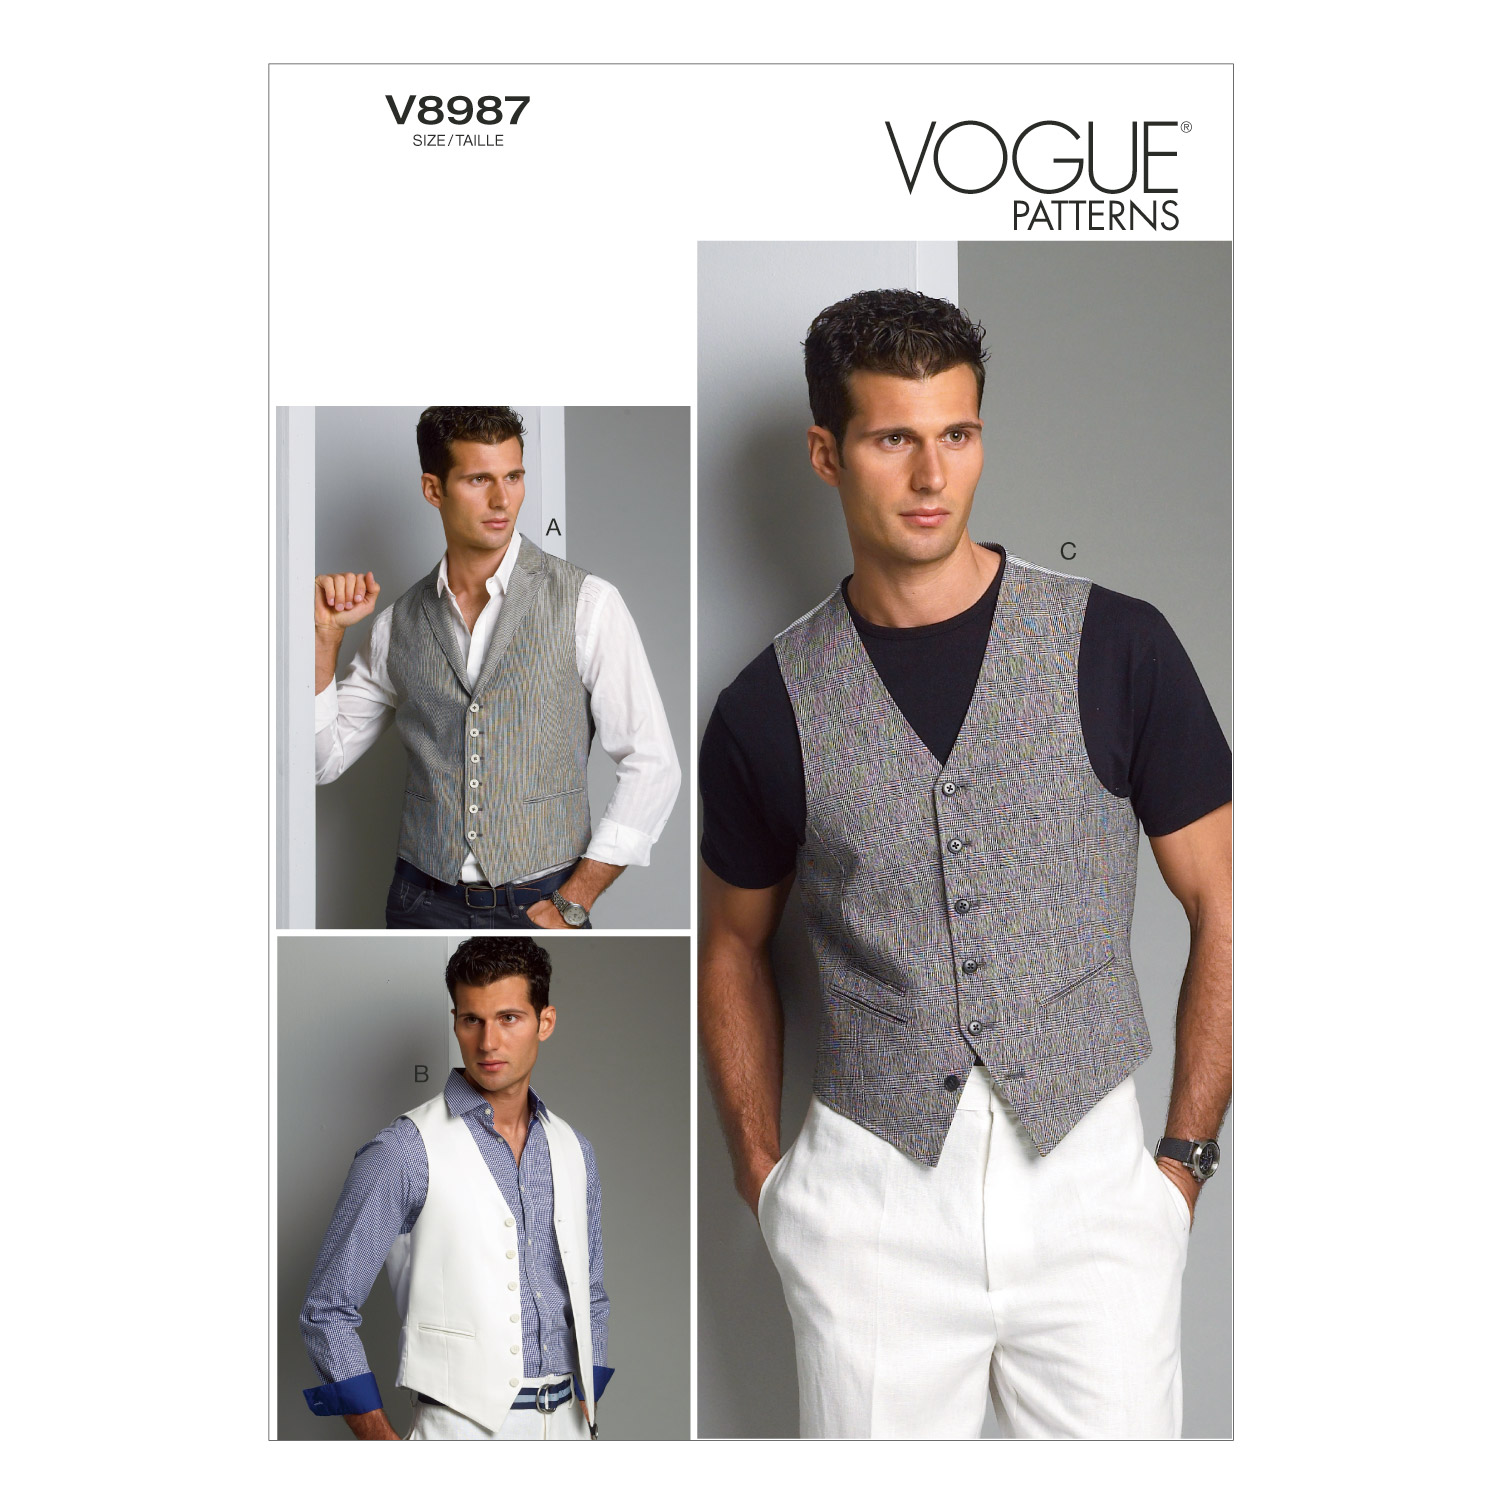 Vogue Patterns Mens Vest-V8987